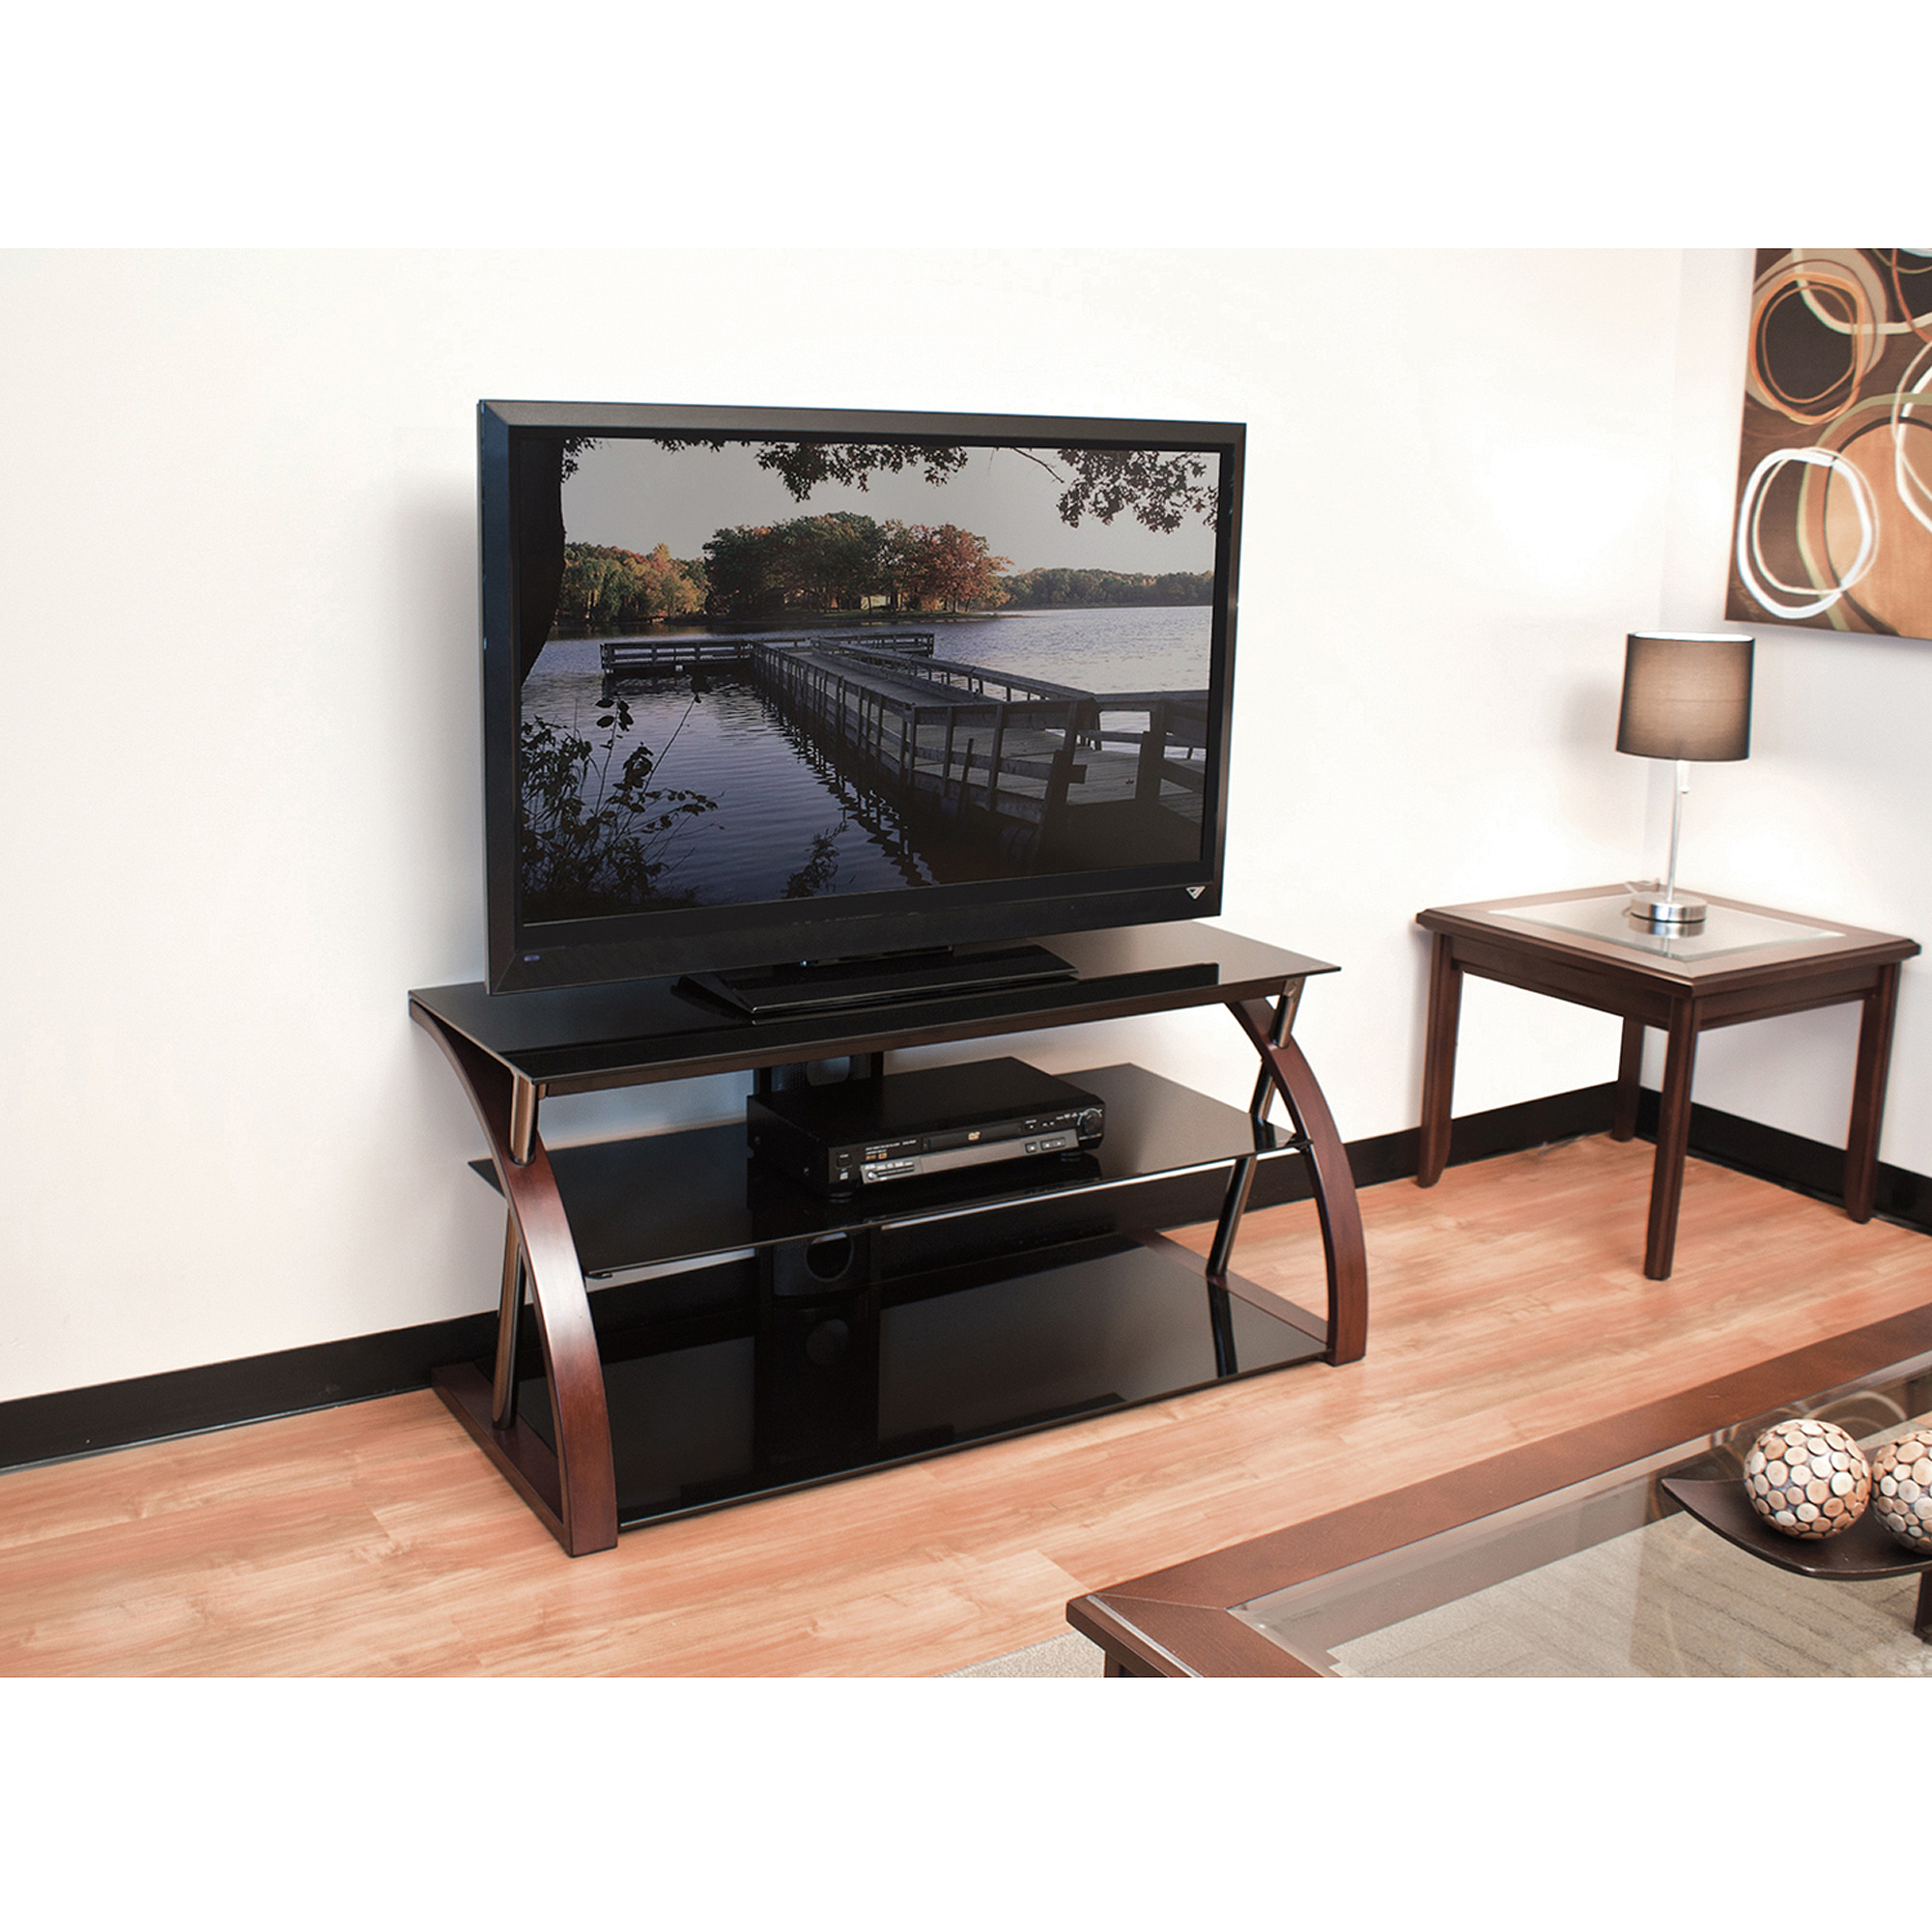 Techcraft 48 Wood Metal And Glass Tv Stand For Tvs Up To 55